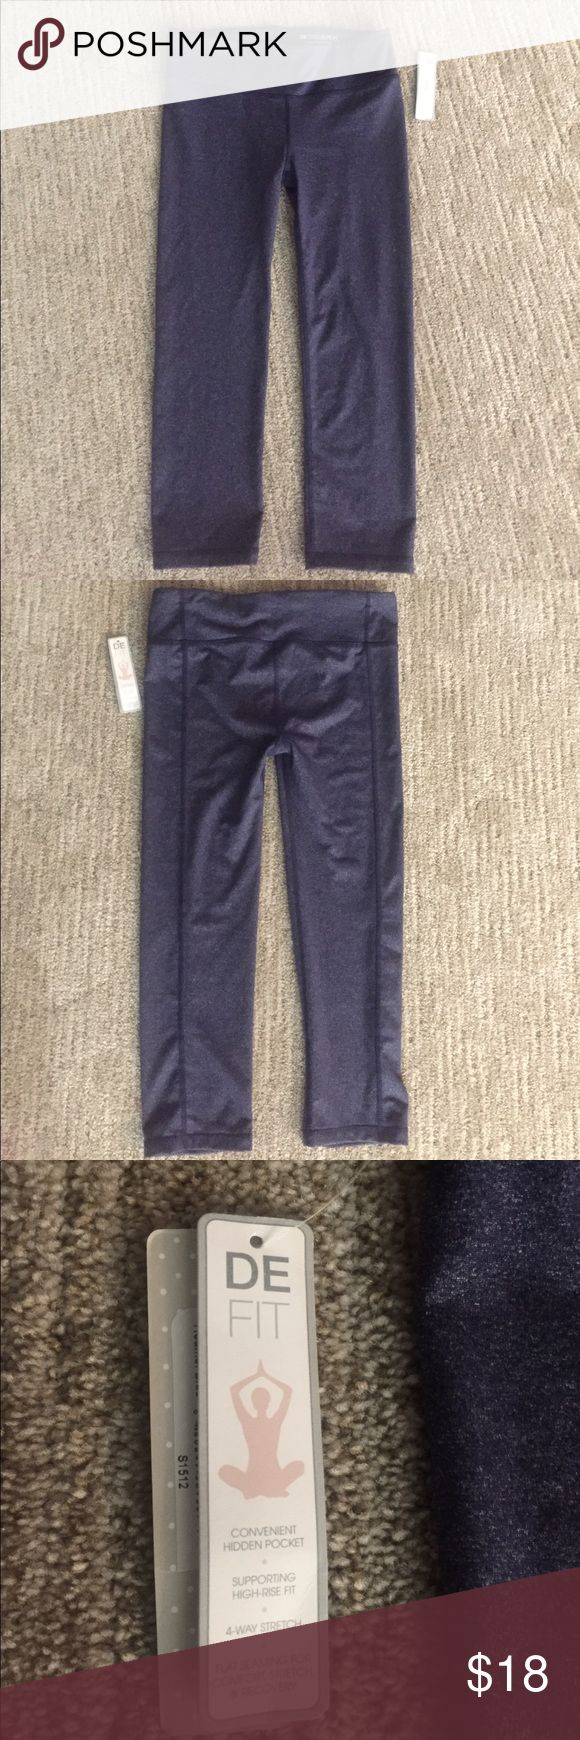 DE Collection yoga studio Capri pant Size XS BLUE Heather blue yoga studio Capri pants. Hidden pocket. High rise fit. 4 way stretch. Flat seaming. Size XSMALL. New with tags DE COLLECTION Pants Leggings